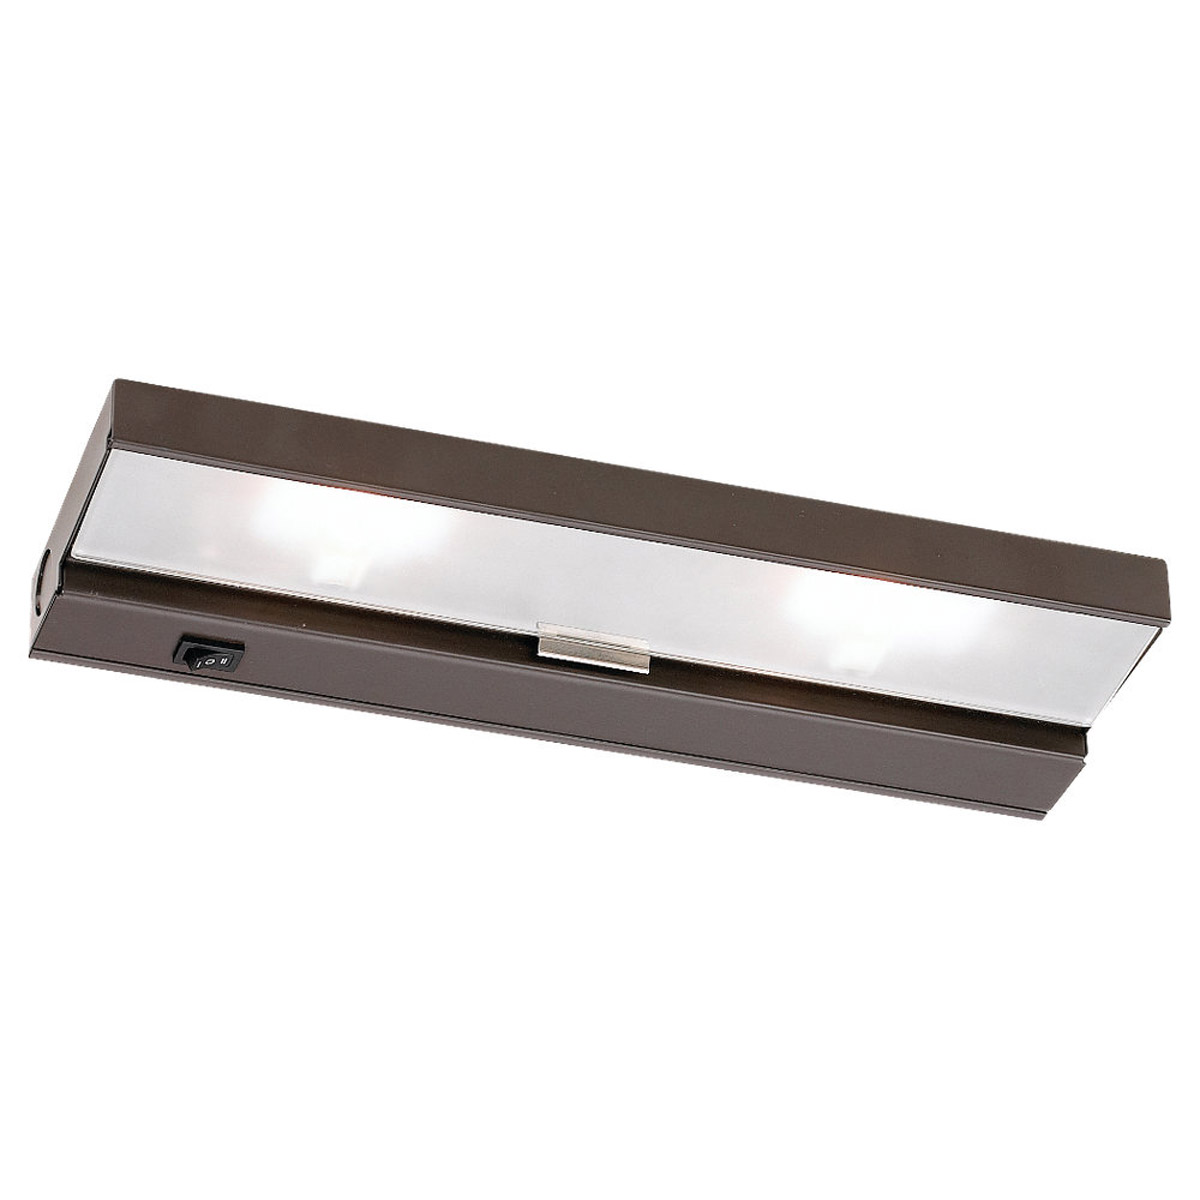 Sea Gull Lighting Undercabinet Lighting 2 Light Undercabinet Halogen in Antique Bronze 98022-71